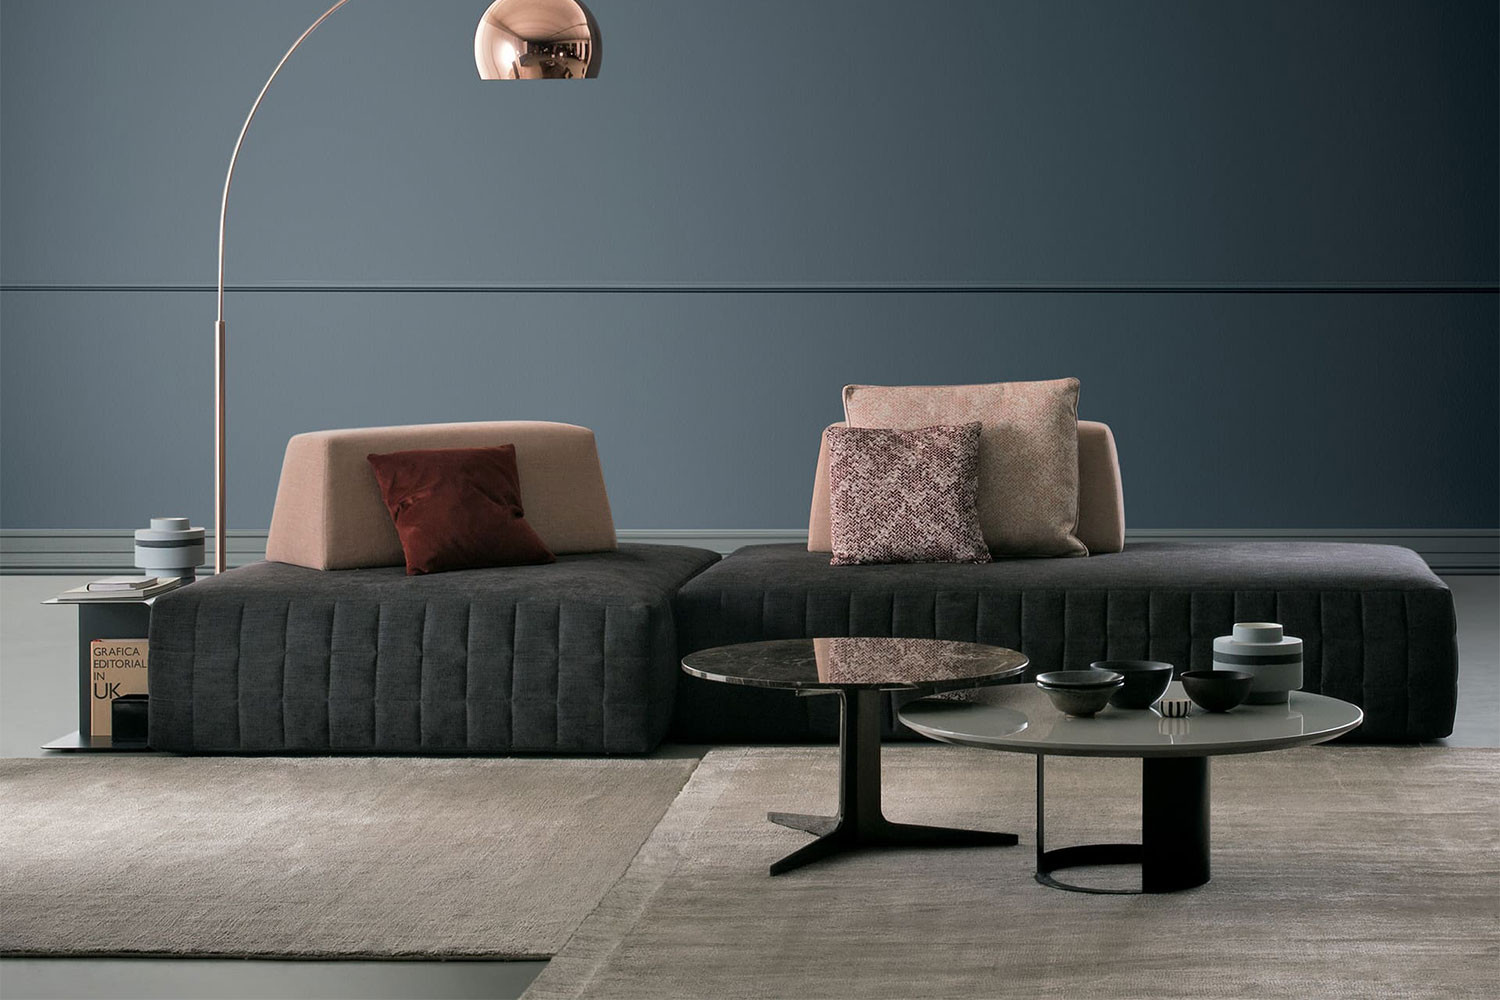 Bespoke low modular sofa, armless, backless, with legless floor skimming seats and weighted back cushions